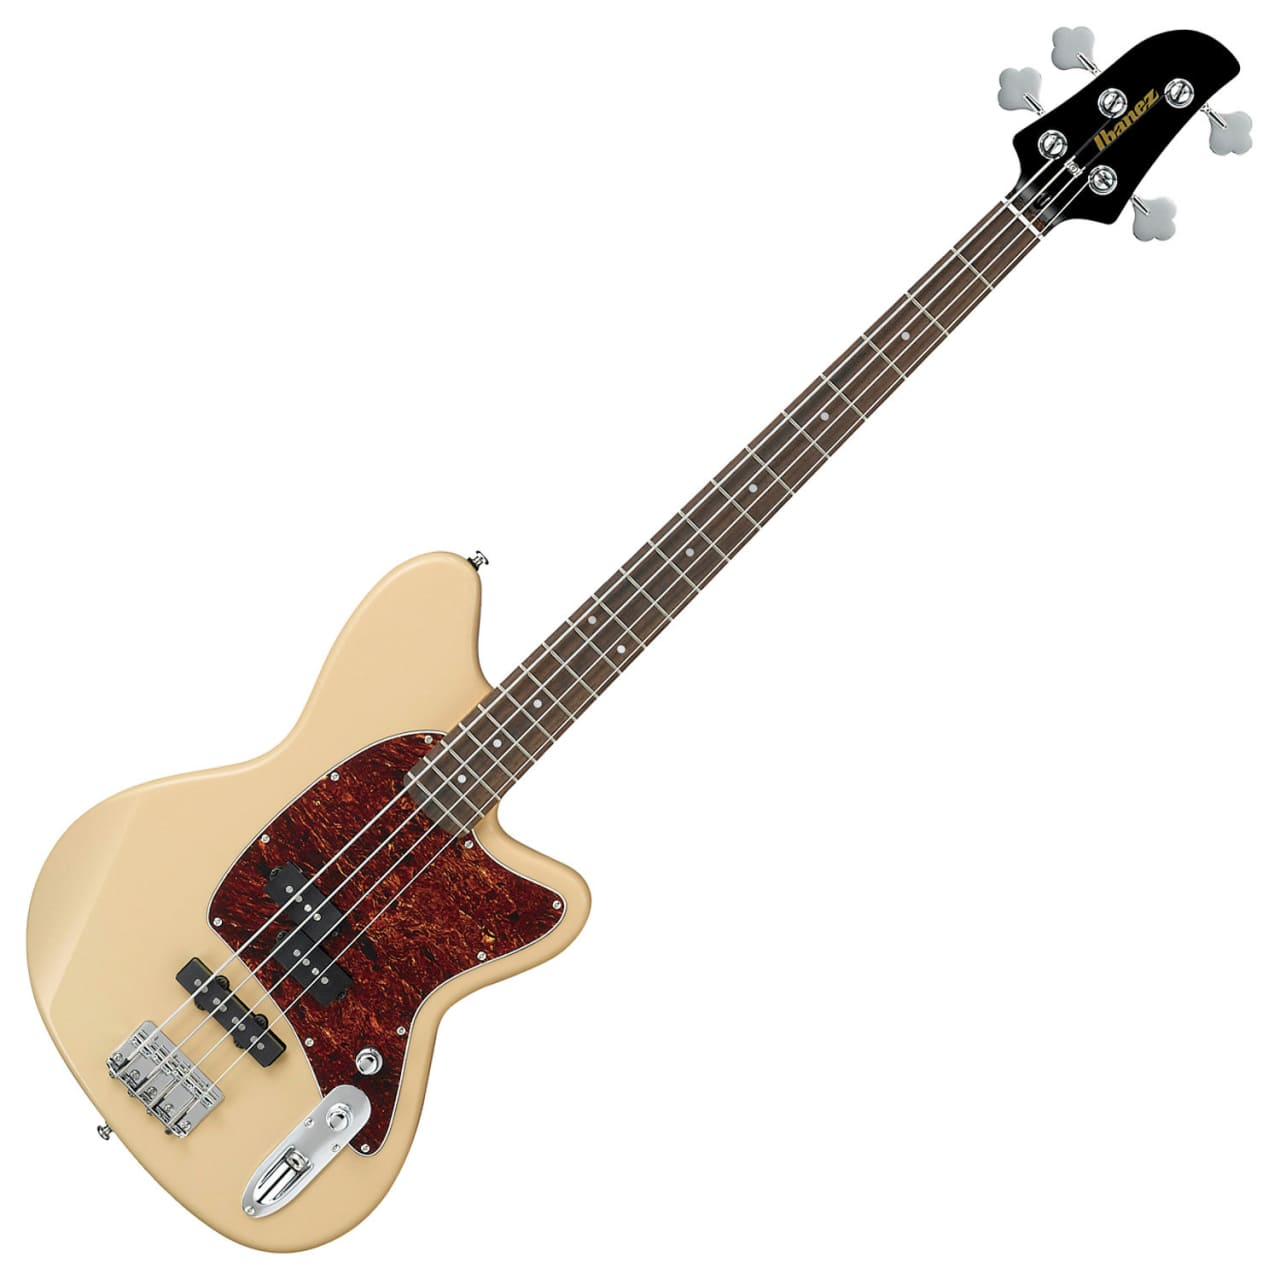 ibanez tmb100 talman 4 string electric bass ivory geartree reverb. Black Bedroom Furniture Sets. Home Design Ideas